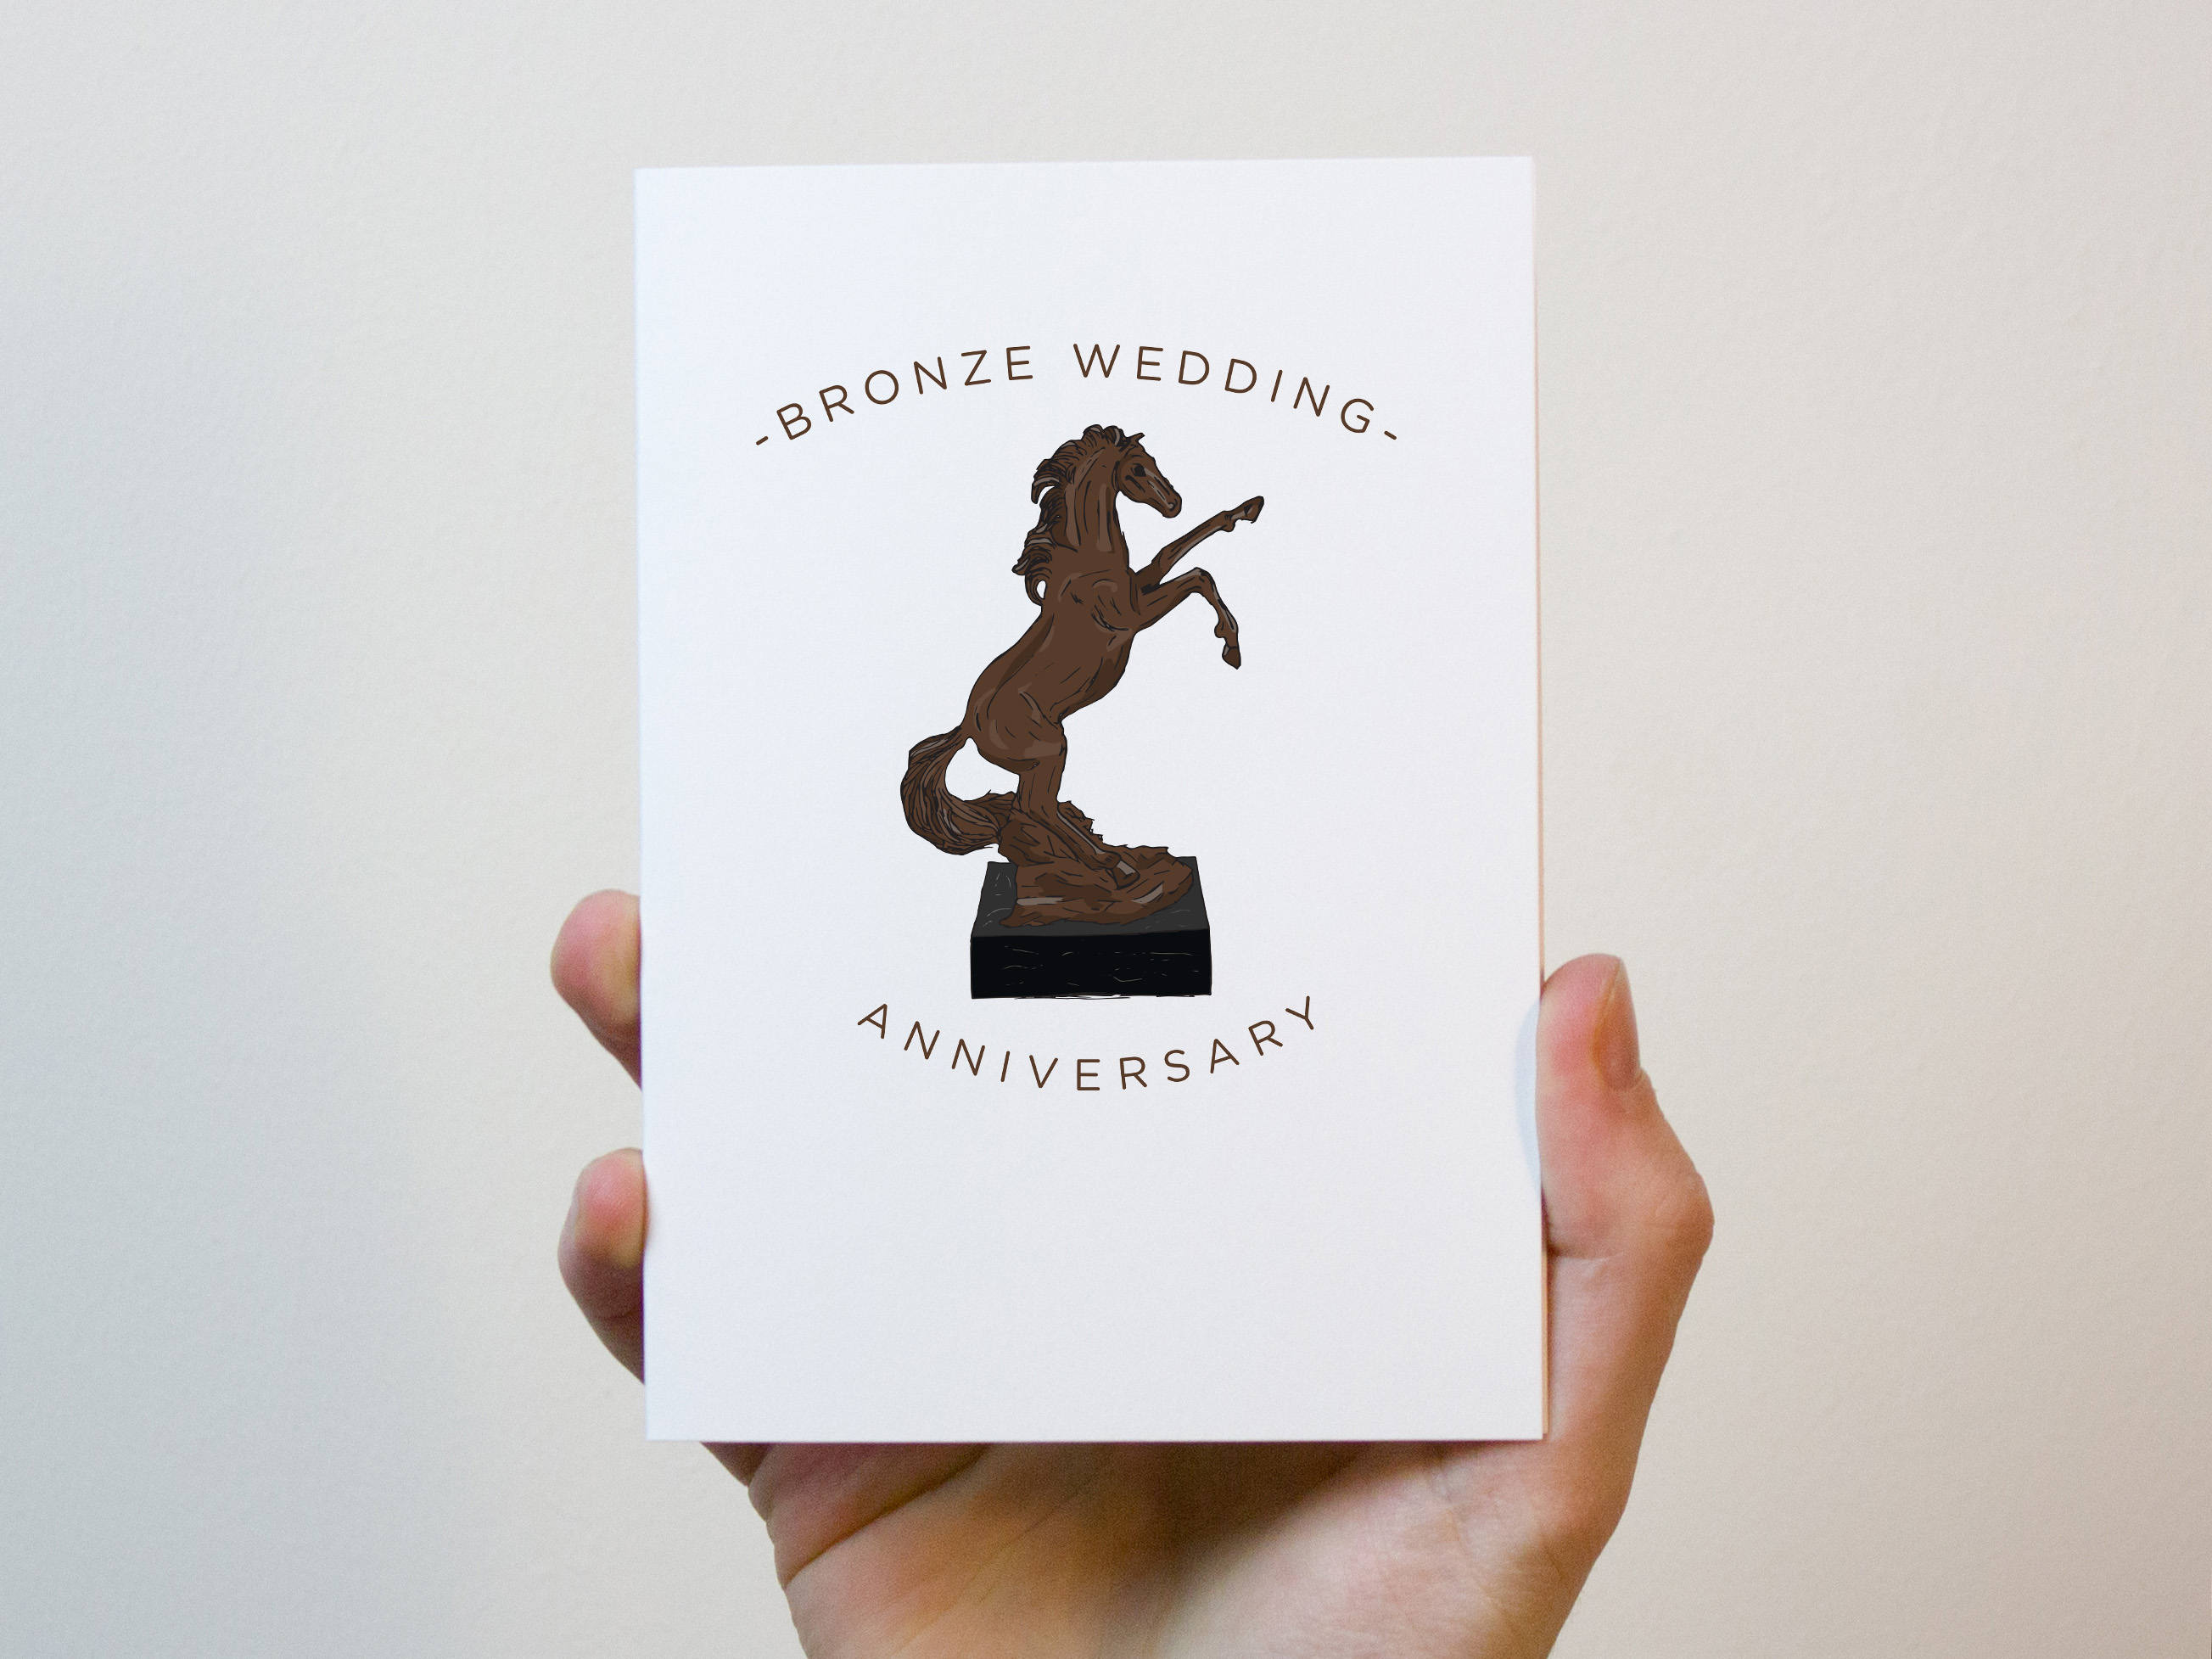 8th Wedding Anniversary.Bronze Wedding Anniversary Card 8 Year Wedding Anniversary Card 8th Wedding Anniversary Card